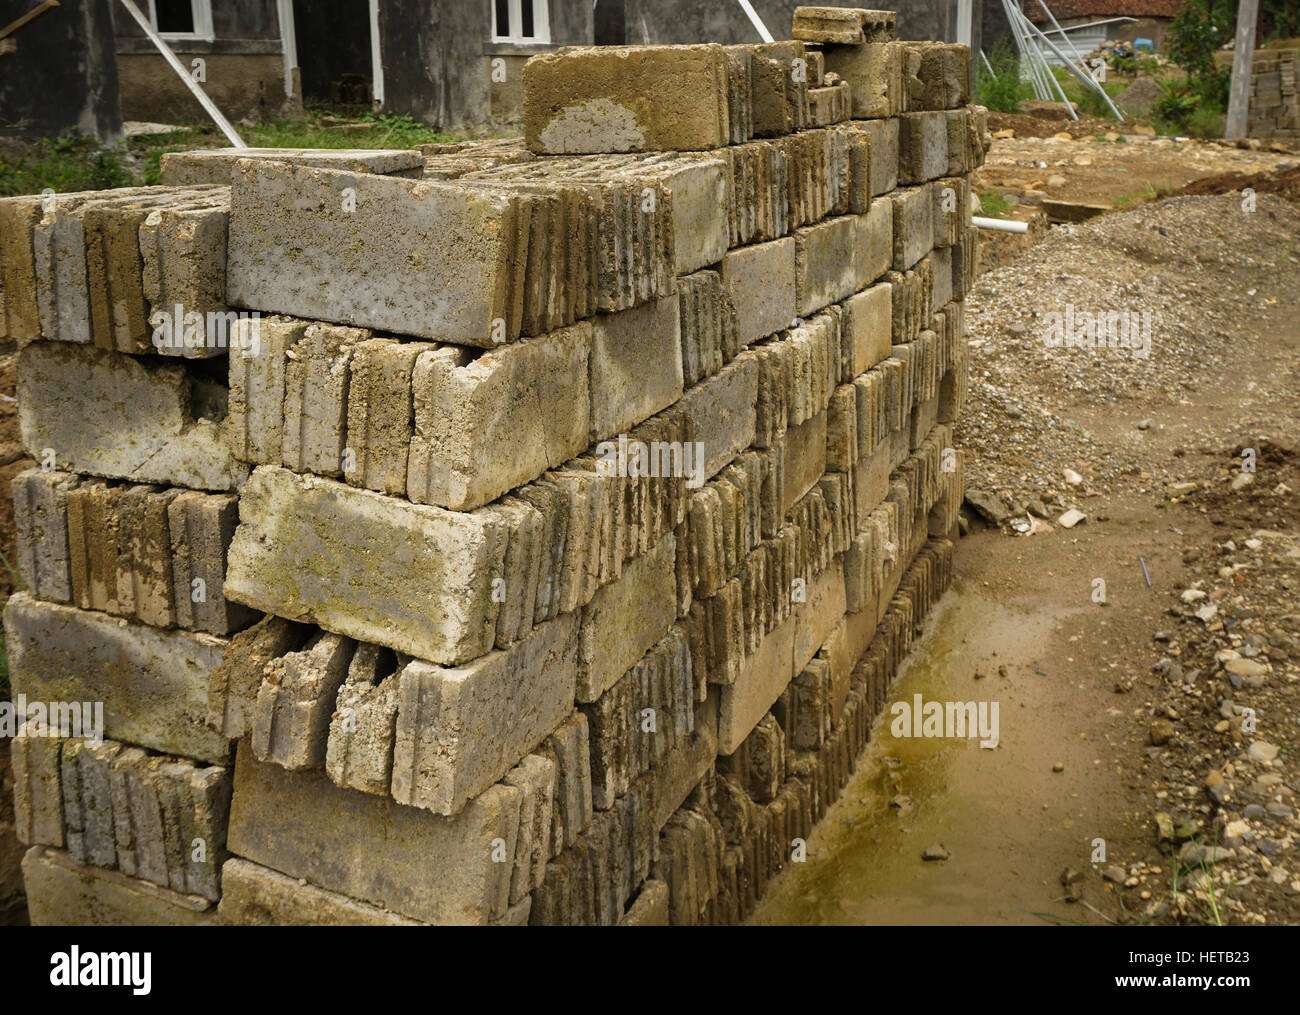 Flint soil stock photos flint soil stock images alamy for Where to start when building a house